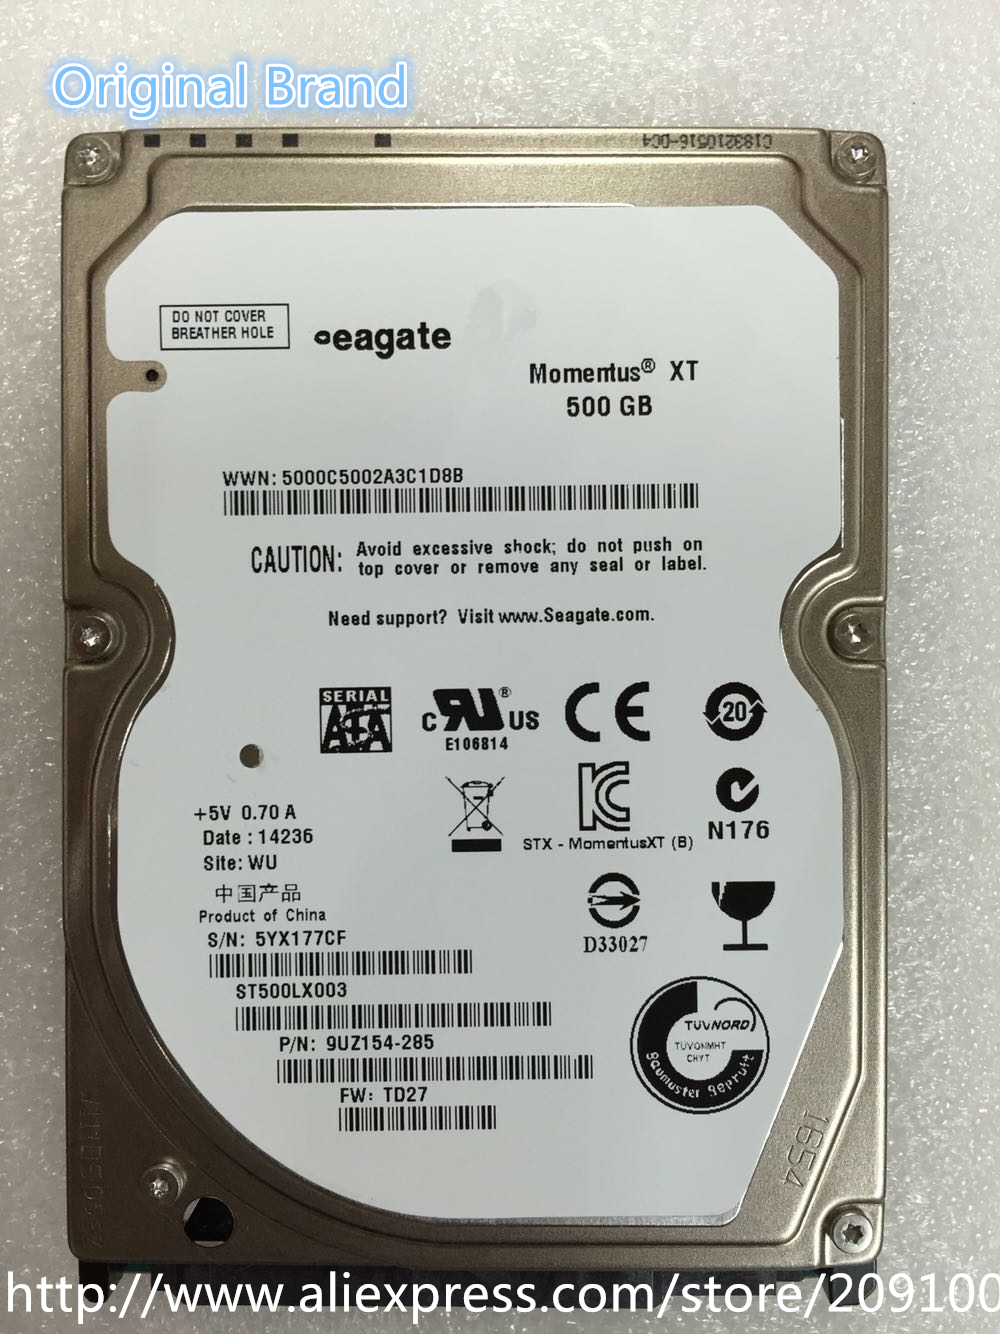 SHDD ST500LX003 Momentus 500GB 7200rpm 32mb Hard Drive For Computers Free Shipping(China (Mainland))